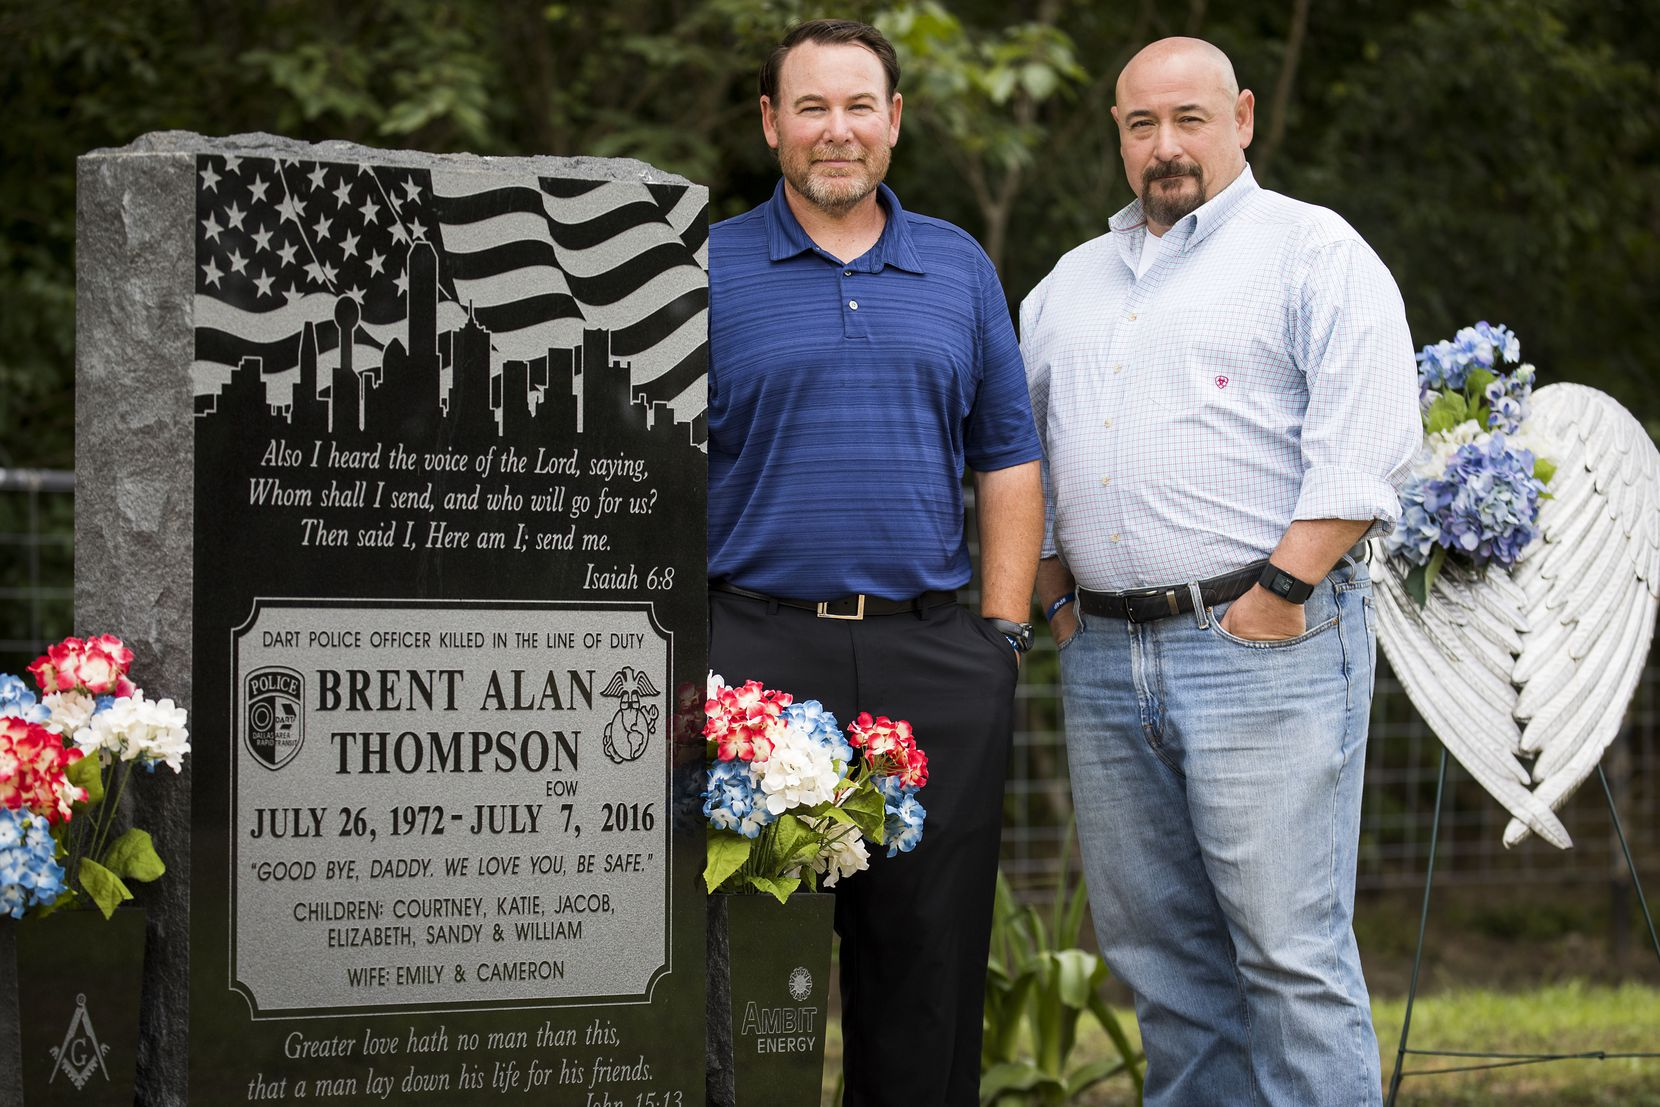 Lowell (right) and Daryl Thompson, the brothers of fallen DART police officer Brent Thompson, photographed at his gravesite on Sunday, June 25, 2017, in Frost.